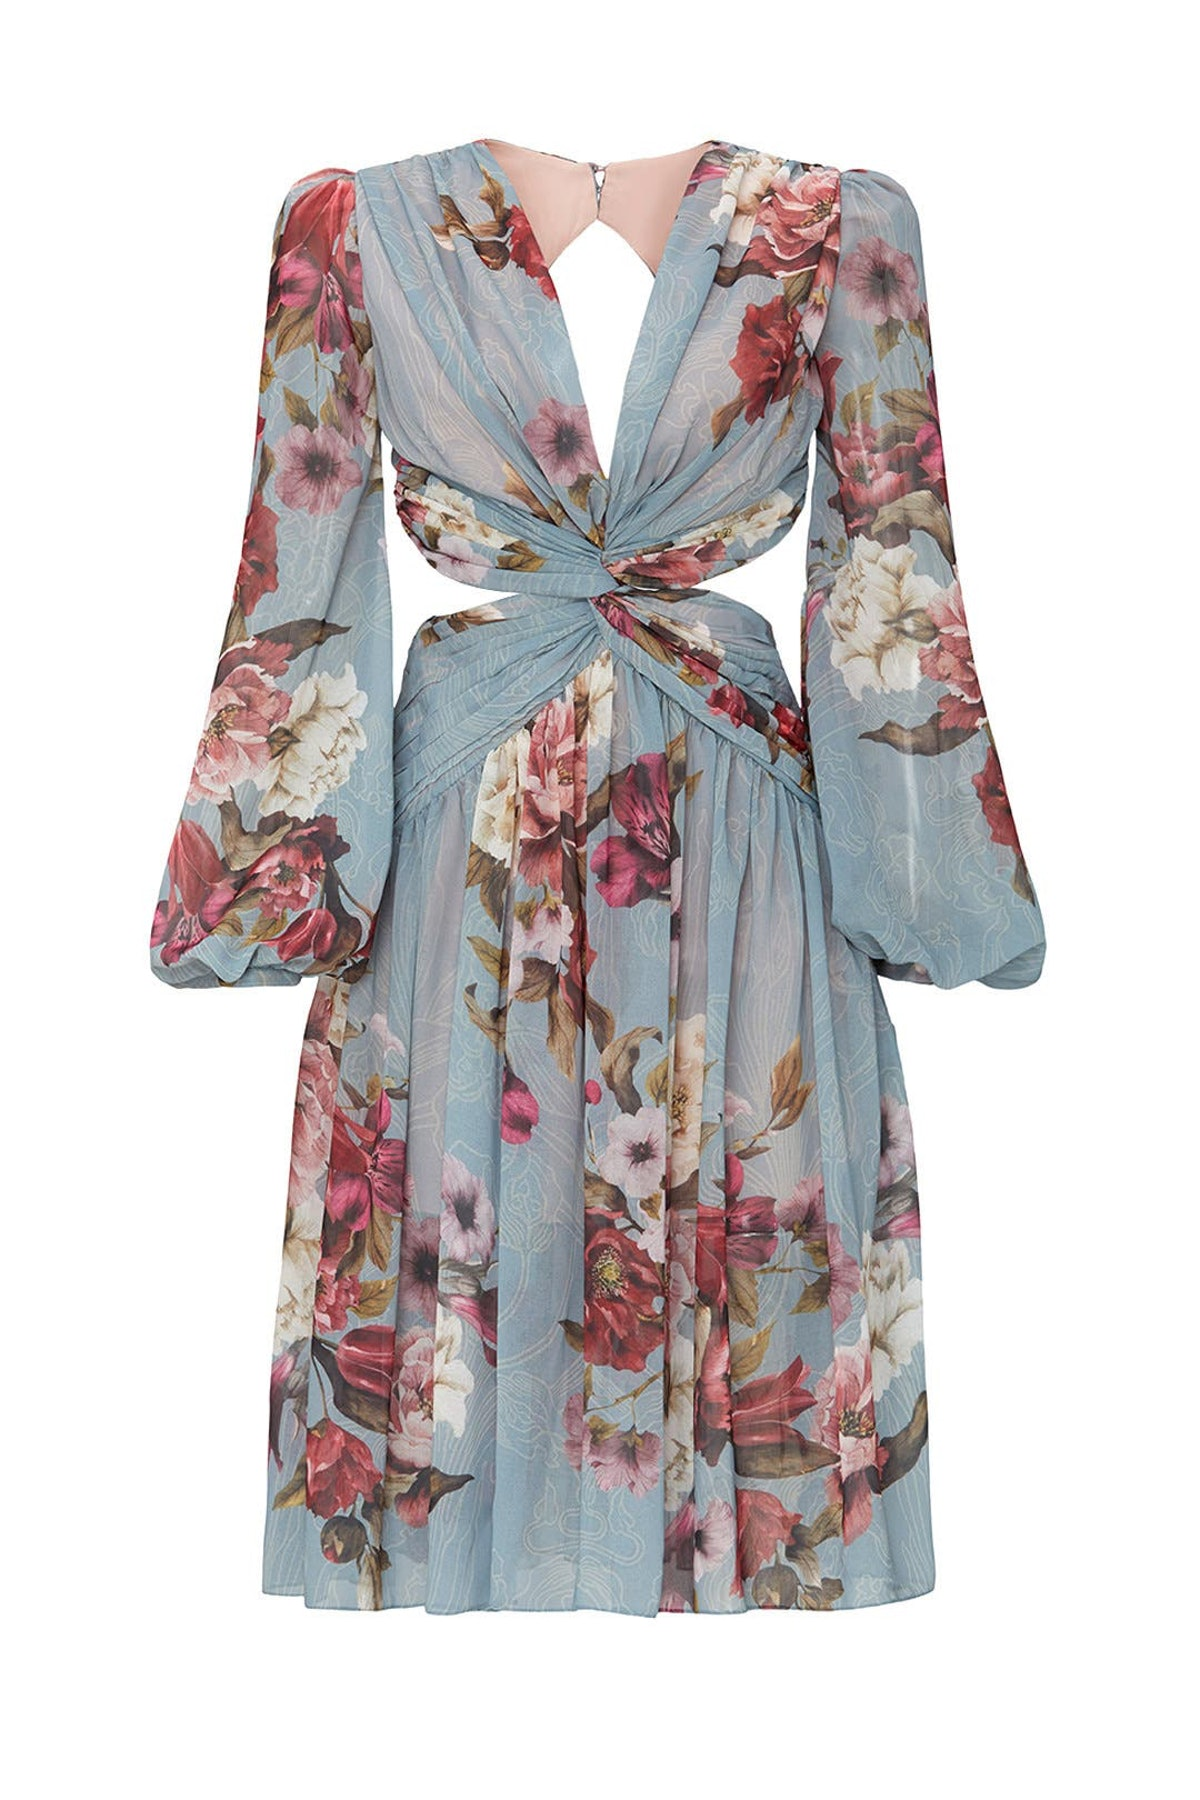 Peony print blue cutout dress from PatBO, available to shop or rent via Rent The Runway.